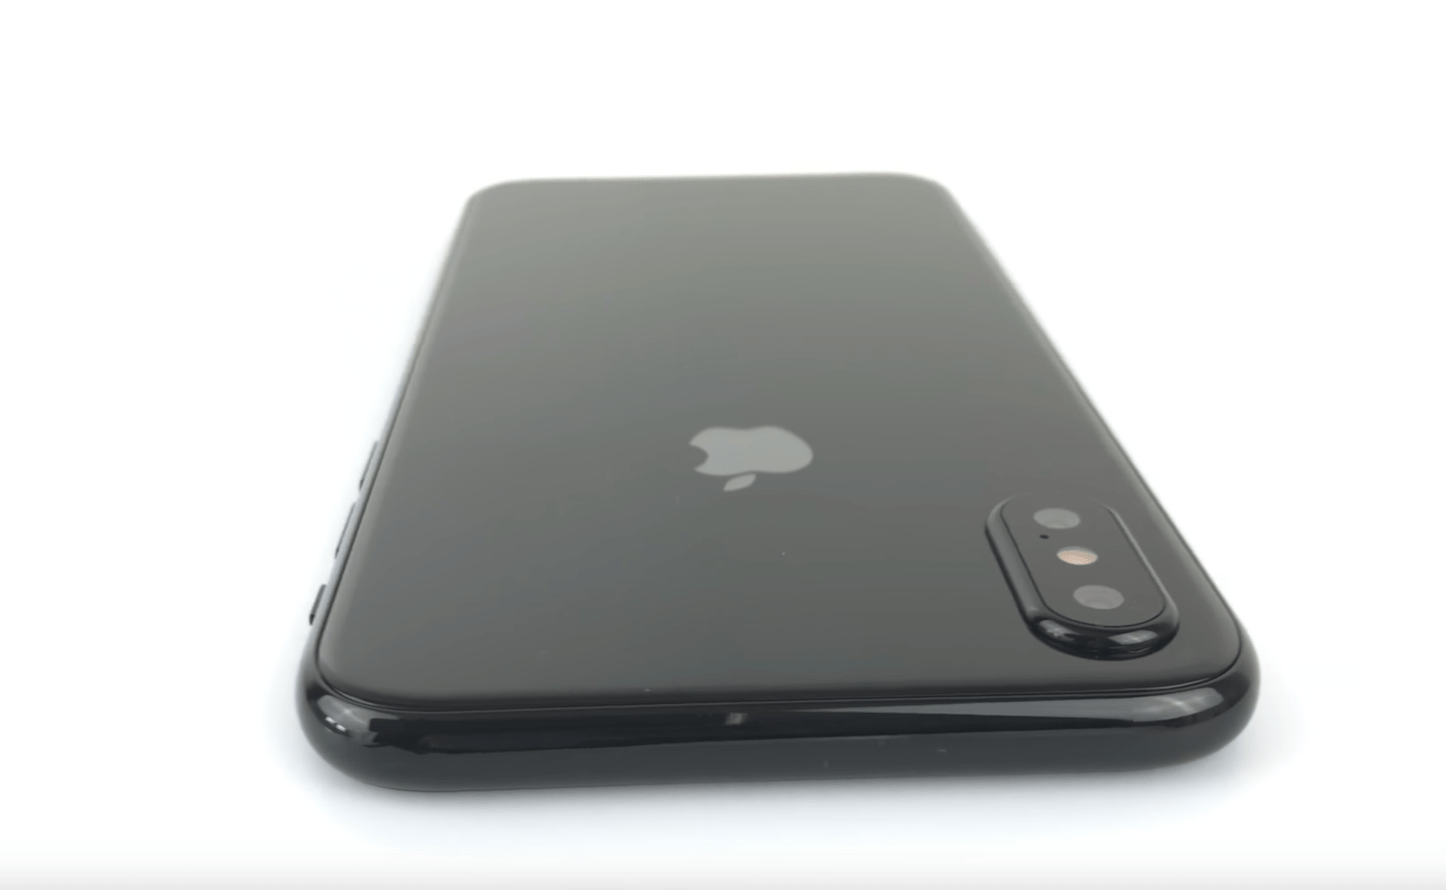 Meet the New iPhone 8 Mockup Handson 4